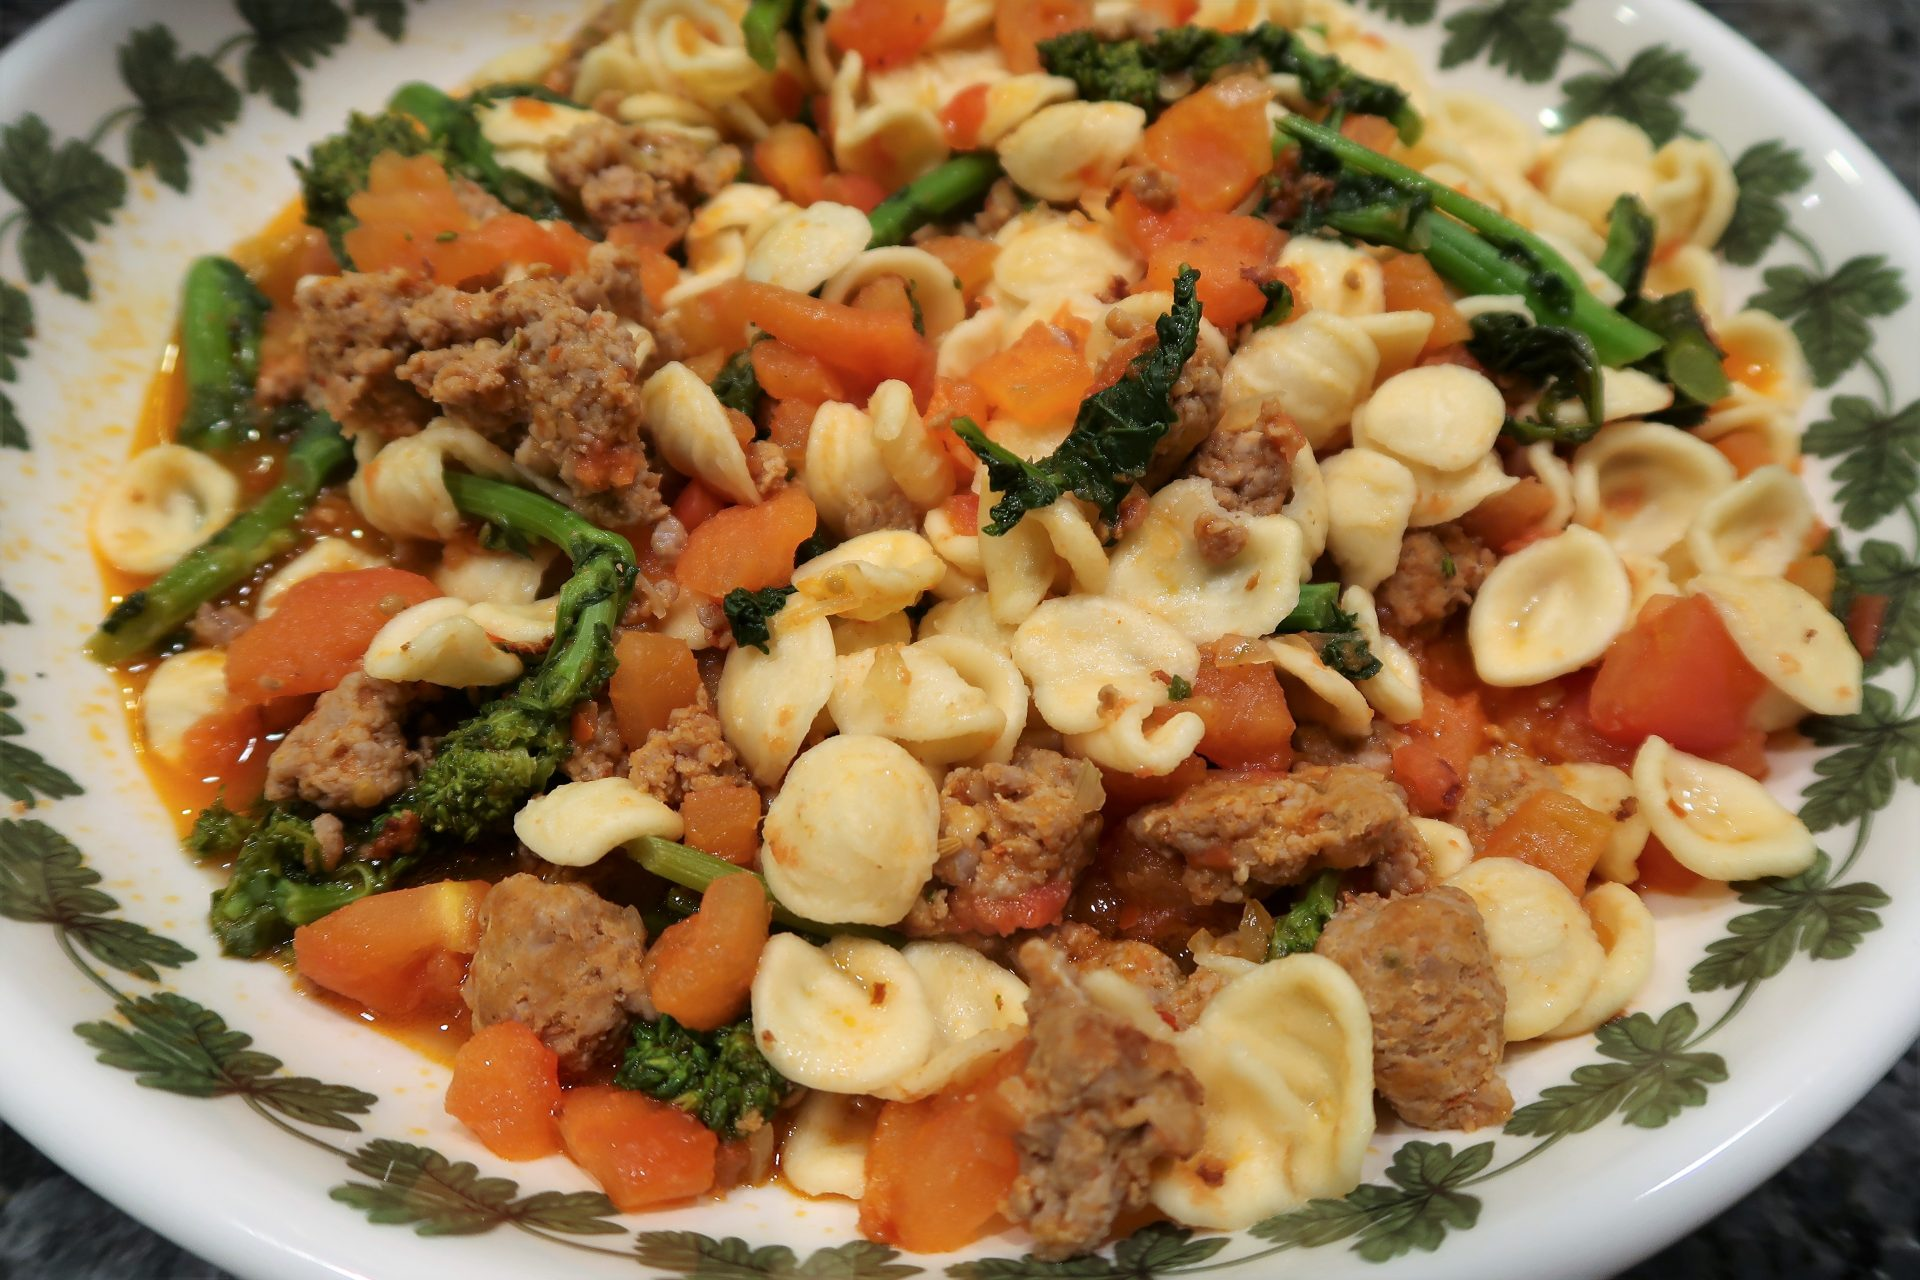 Pasta with Broccoli Rabe and Sausage Recipe